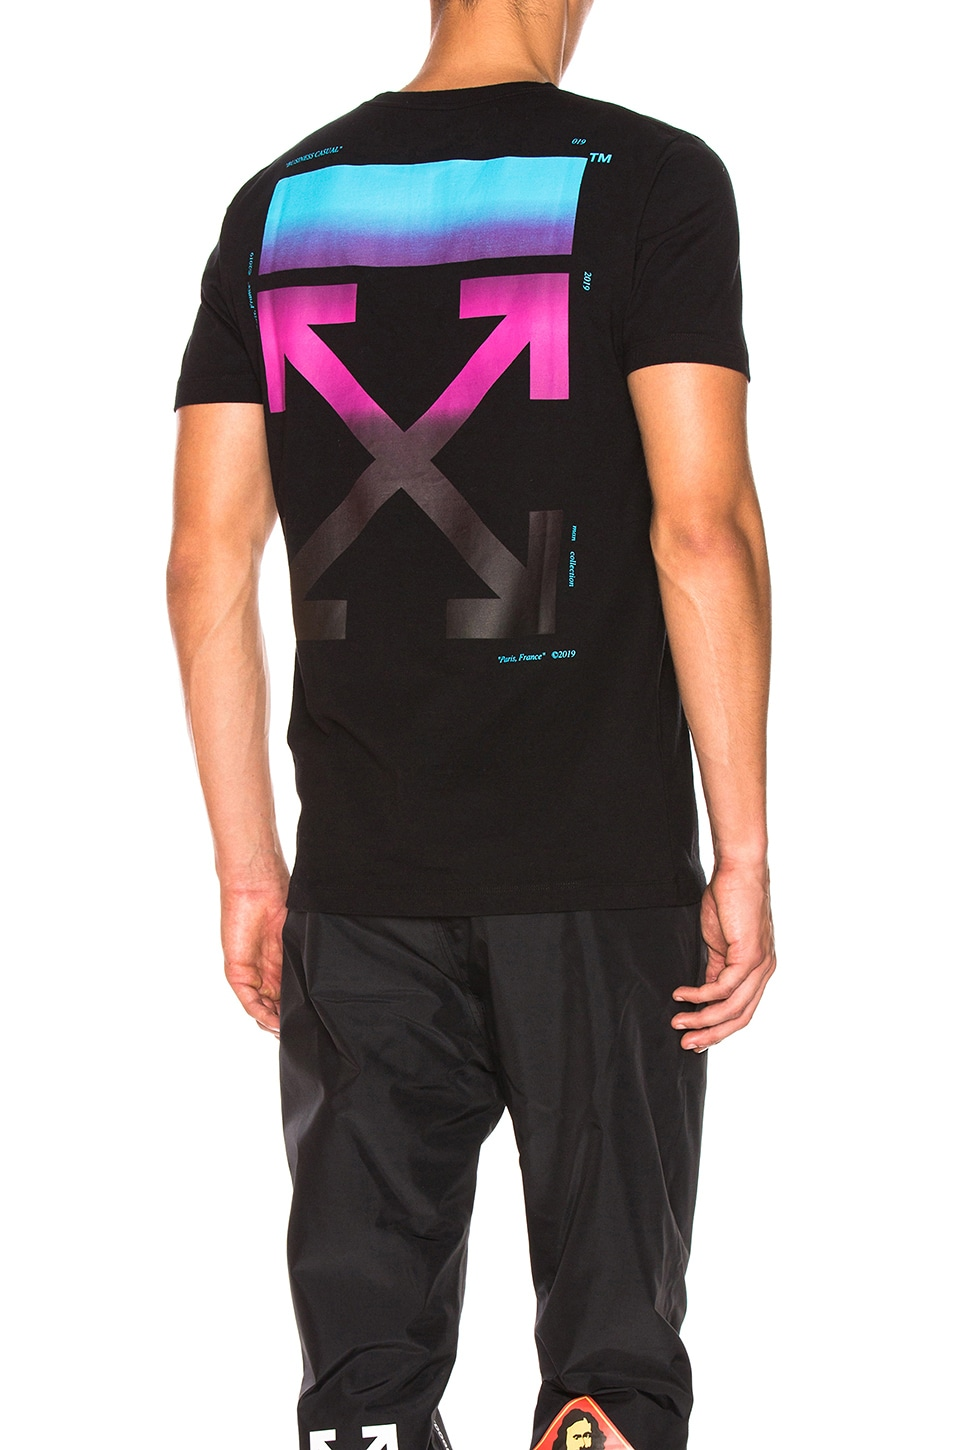 Off-White Industrial Strap Gradient Arrows T-Shirt Men/'s Small Medium Large